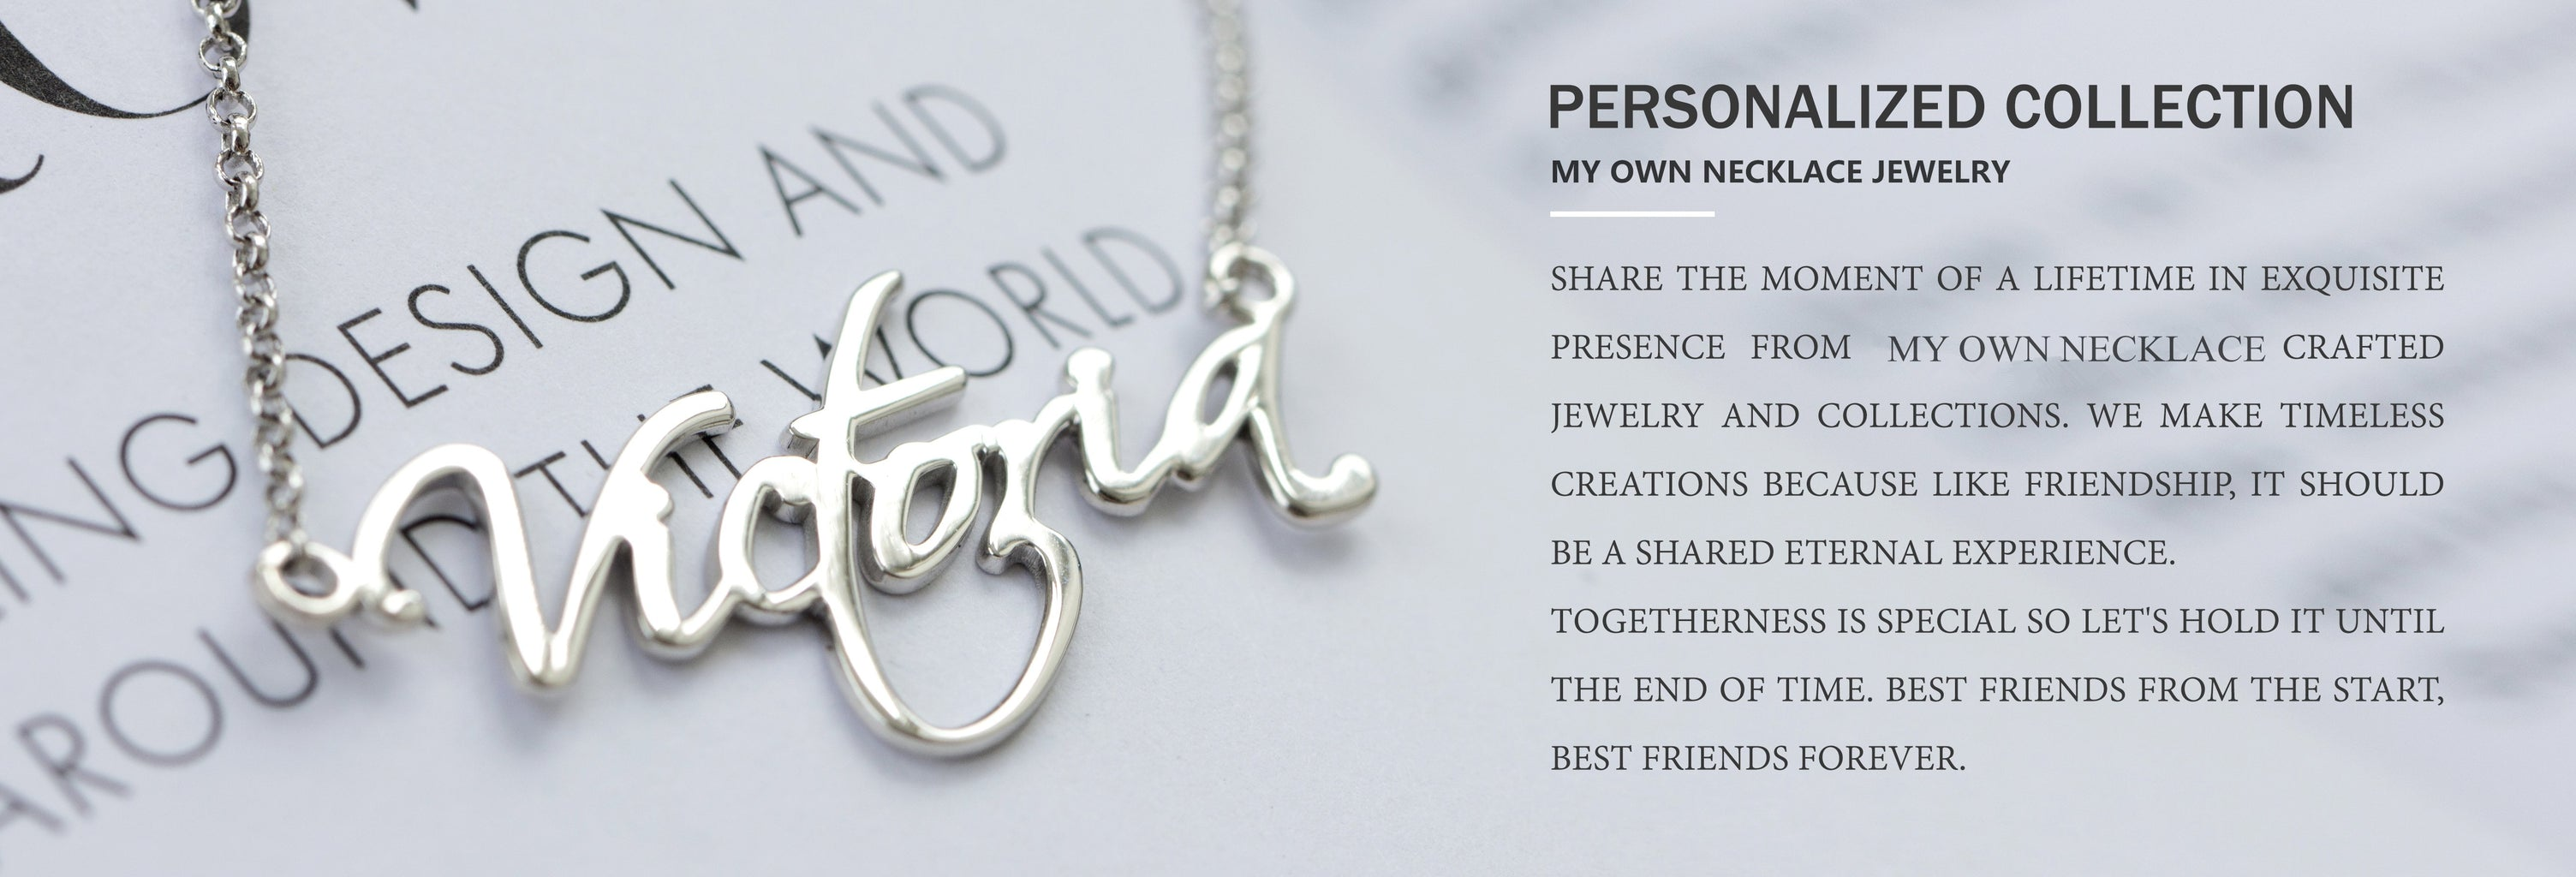 Customized name necklace - Banner 1